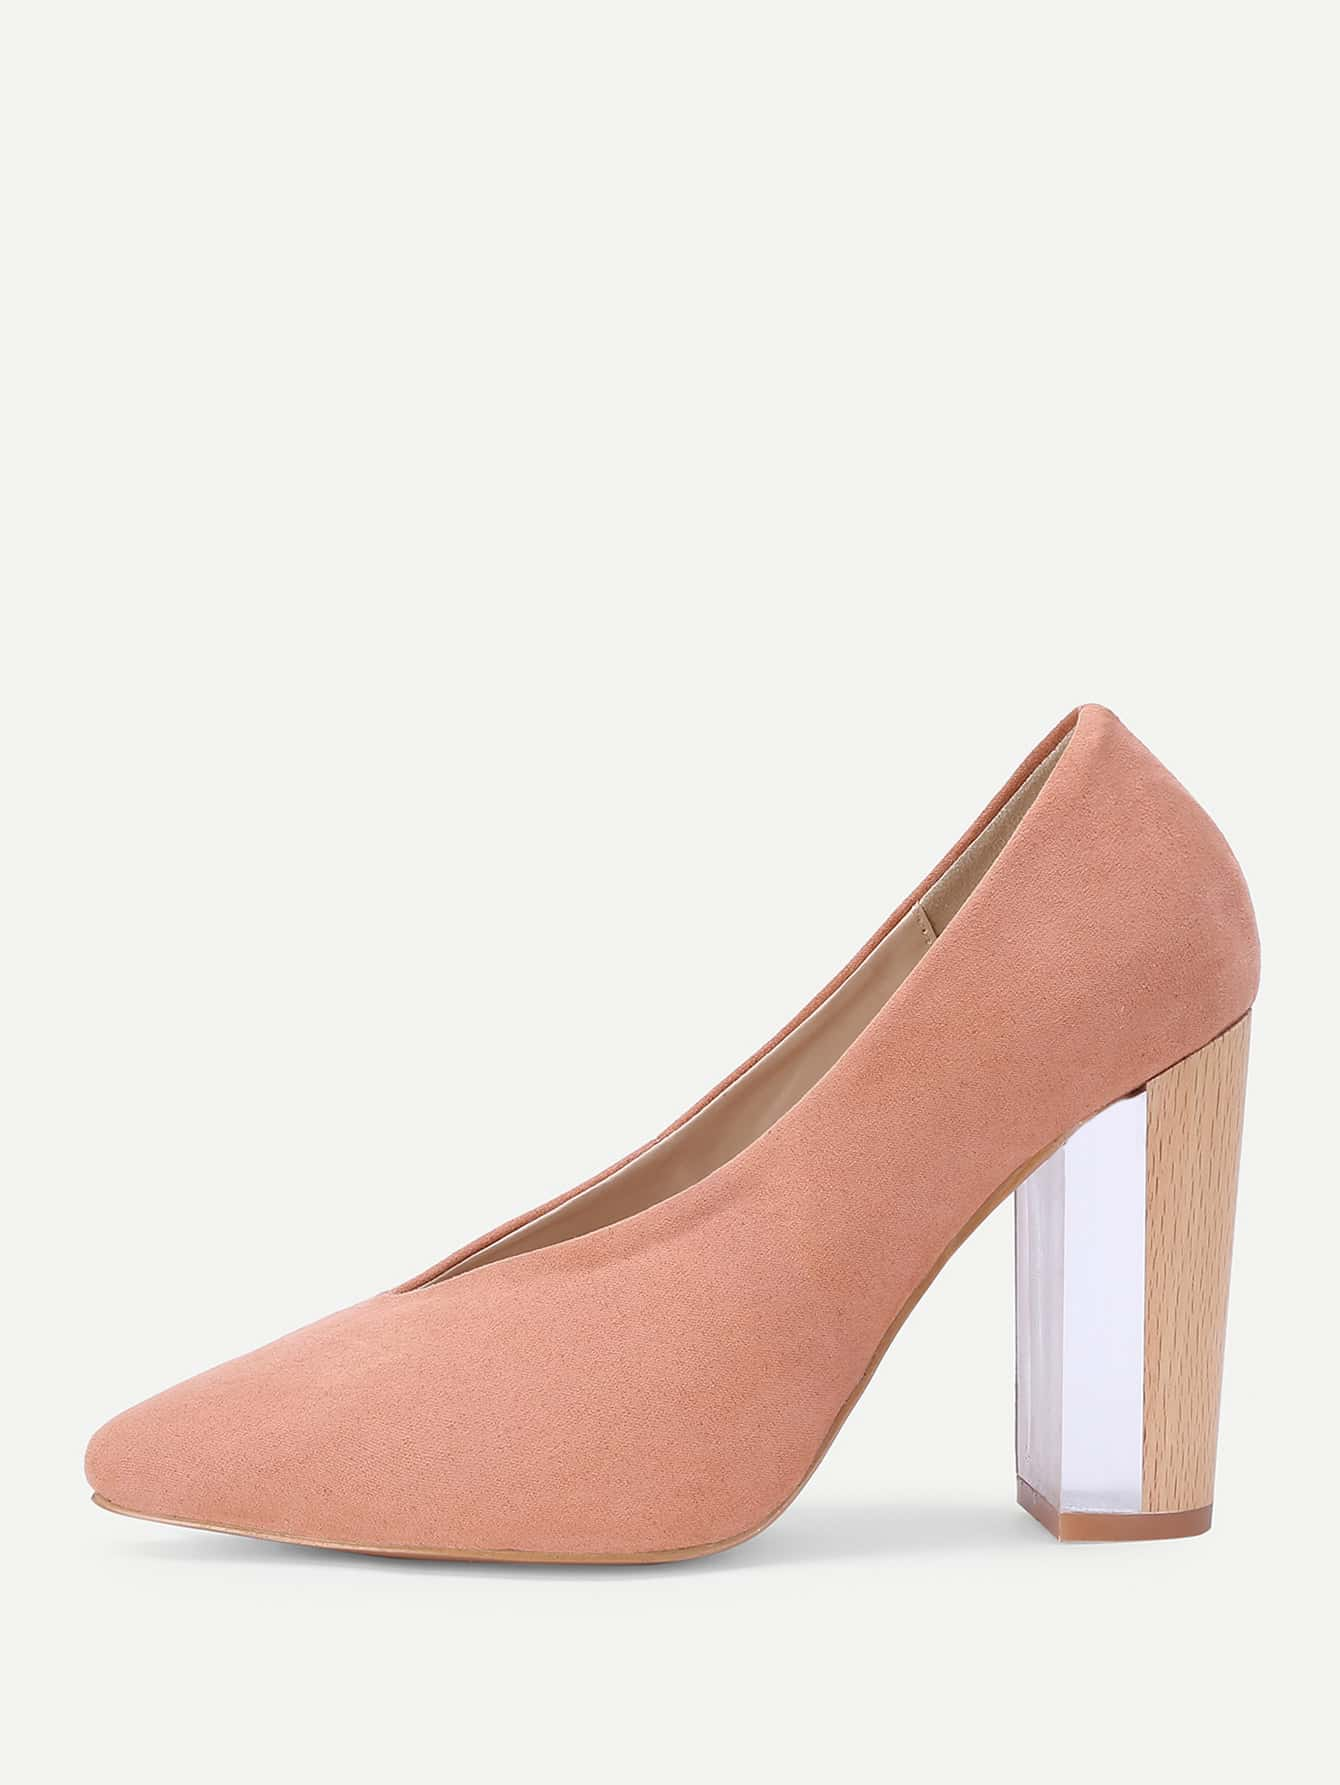 Image of Almond Toe Block Heeled Pumps